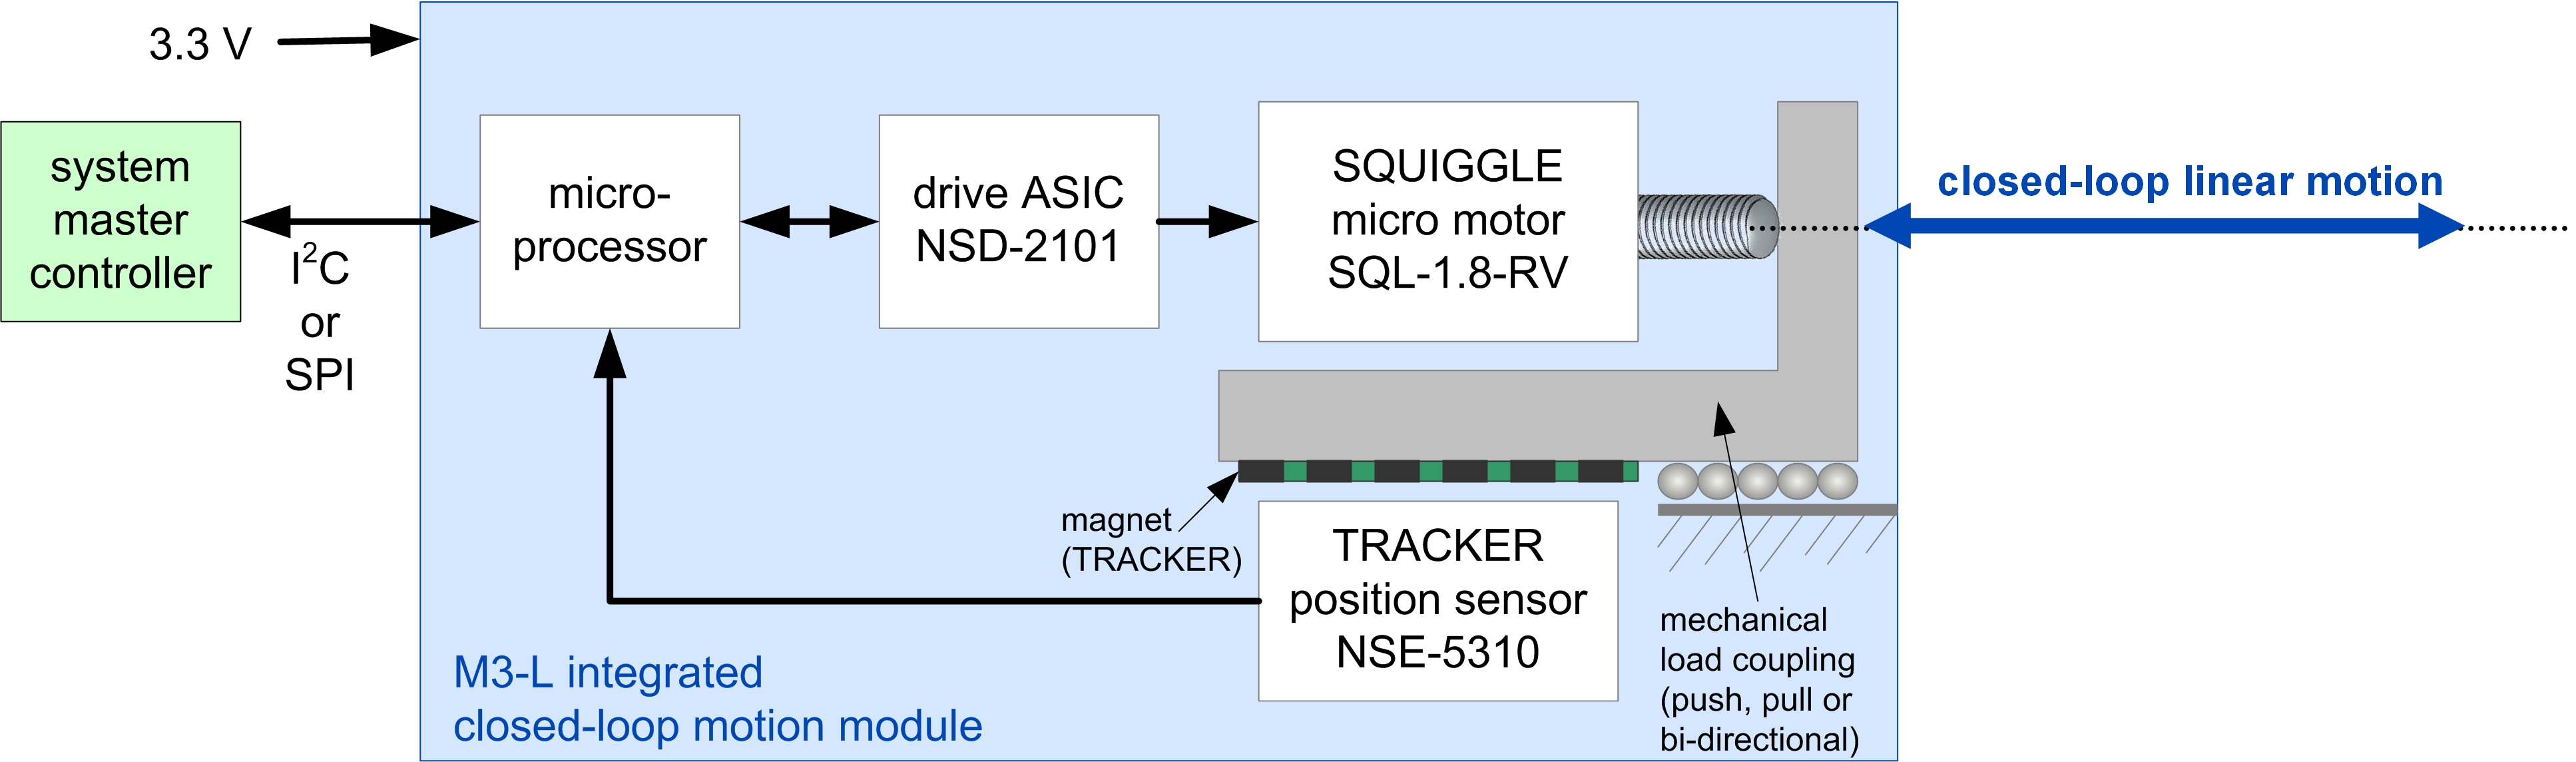 Rf Tuning Applications Of M3 Modules New Scale Technologies Animated Diagram Showing The Operation A Tuned Circuit Lc Figure 1 L Micro Mechatronics Module Incorporates Squiggle Motor Drive Asic Position Sensor And Processor On Board Accepts